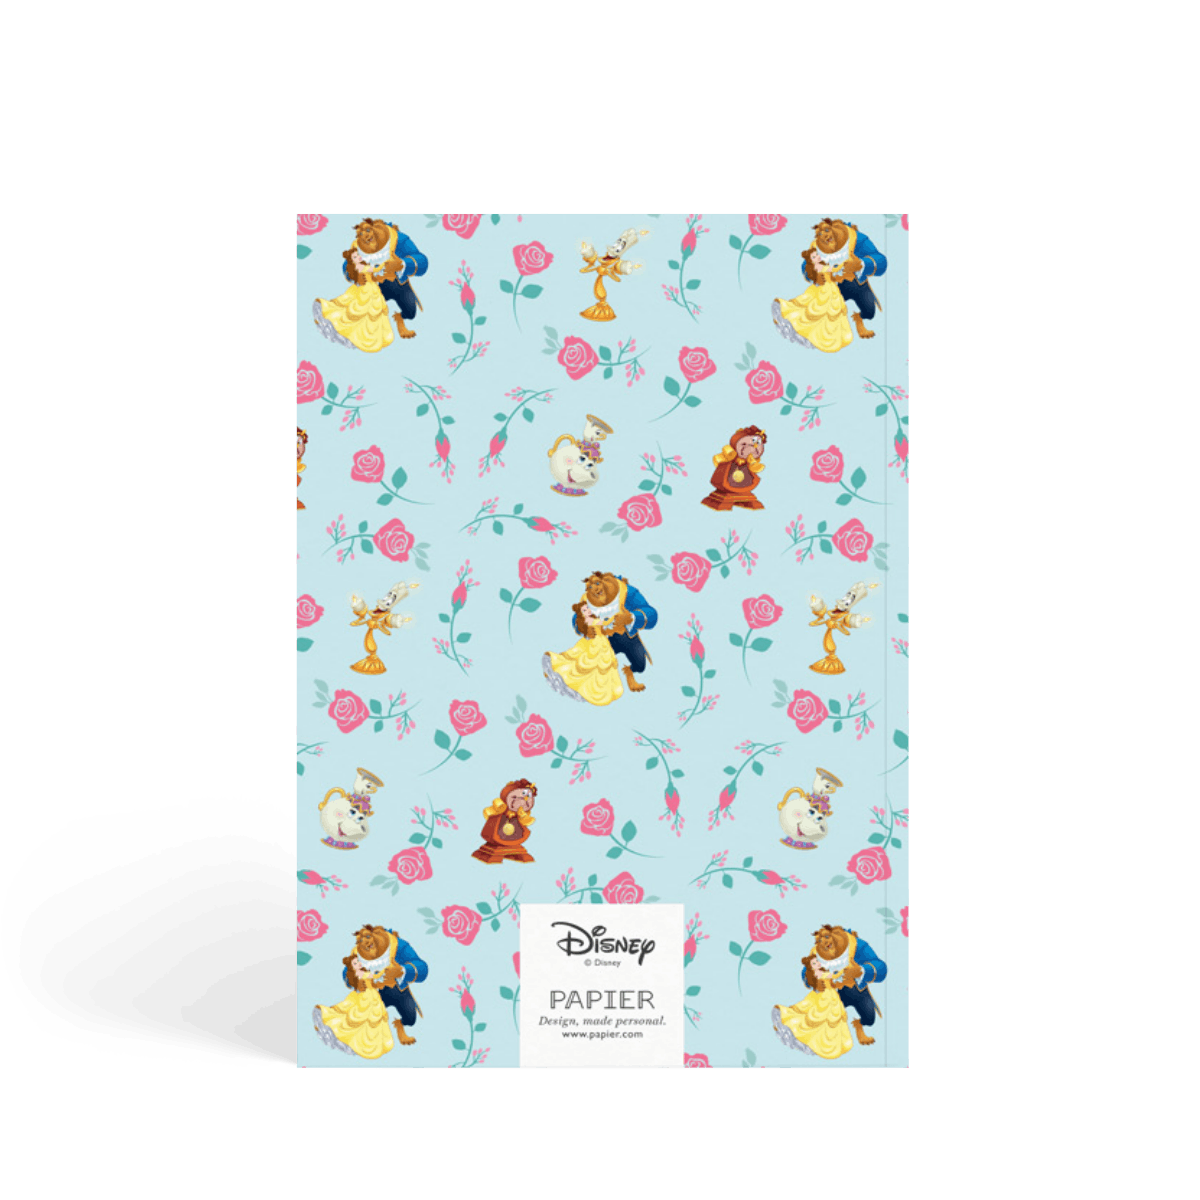 Https%3a%2f%2fwww.papier.com%2fproduct image%2f35869%2f5%2fbeauty the beast 8971 rueckseite 1523296335.png?ixlib=rb 1.1